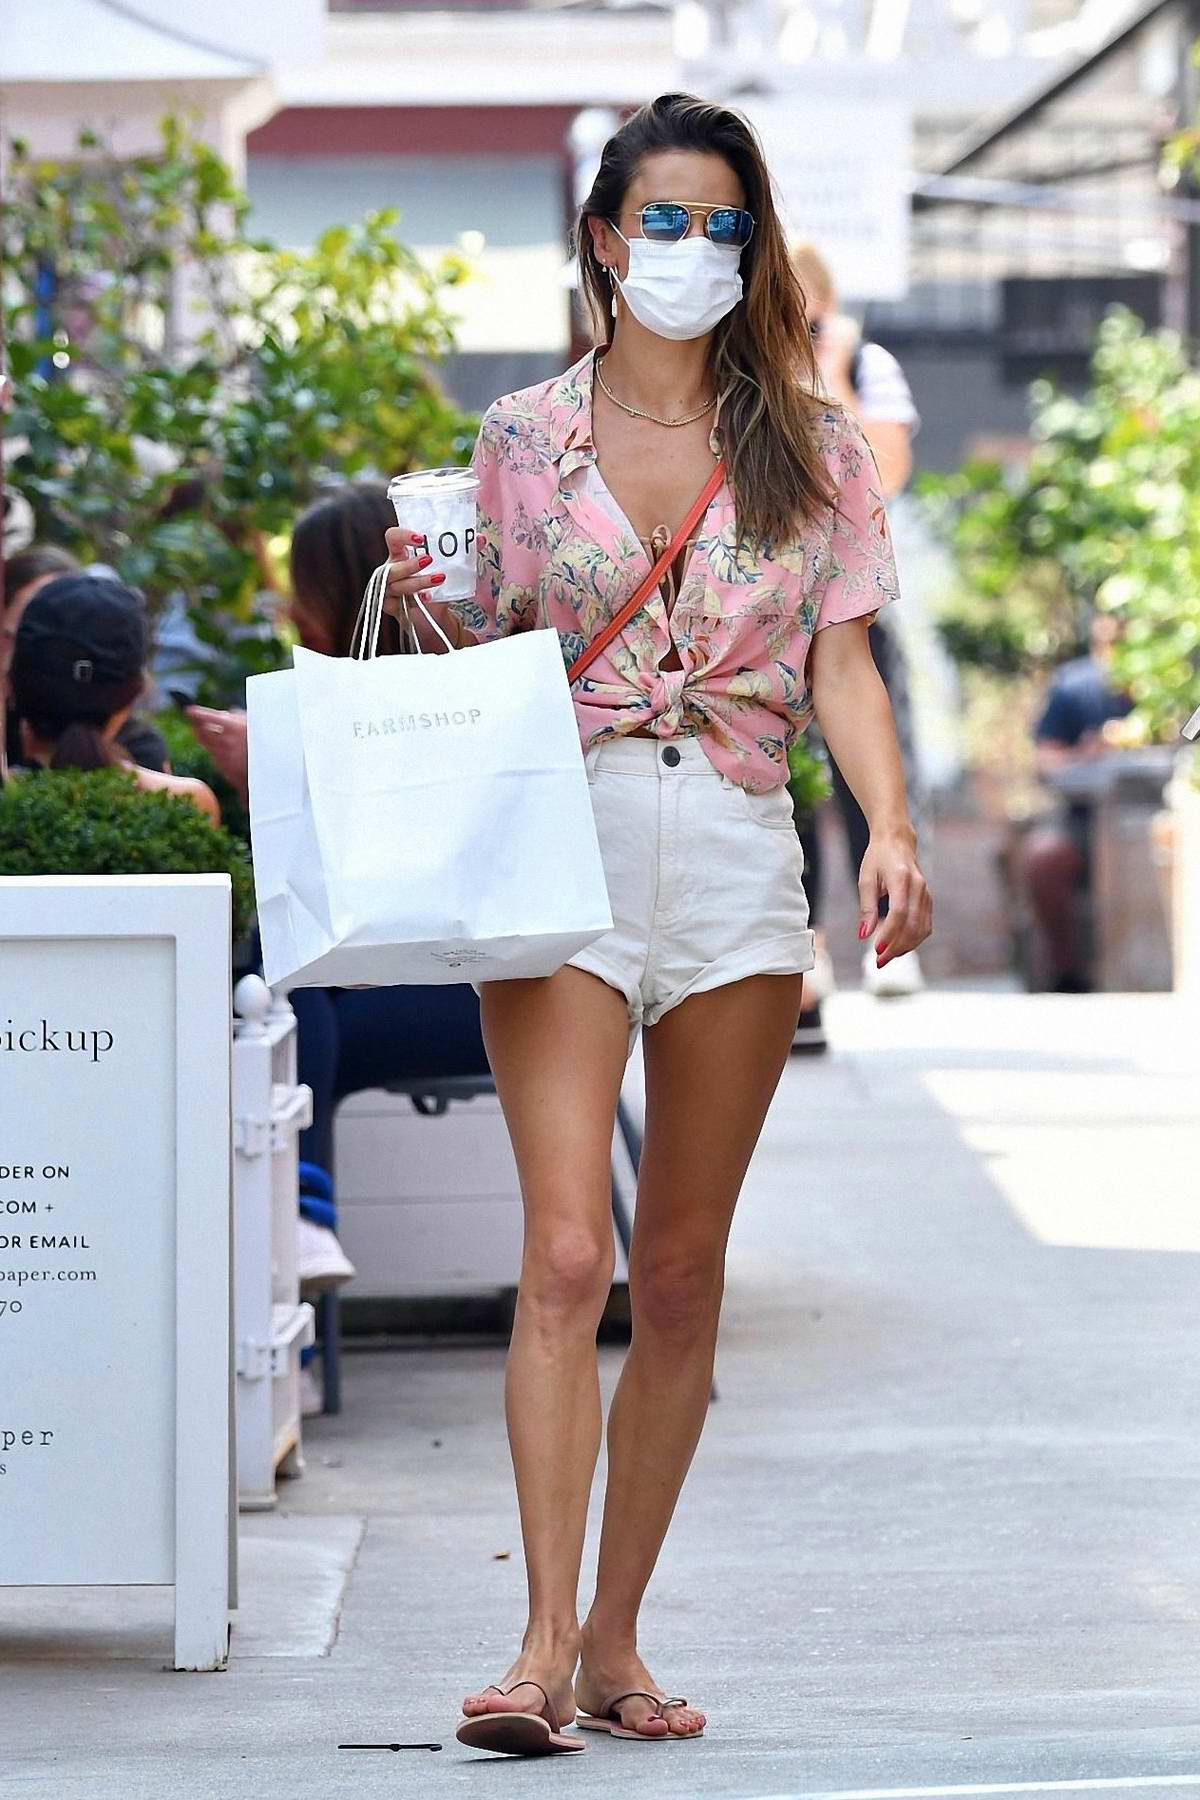 Alessandra Ambrosio puts on a leggy display while out shopping in Santa Monica, California